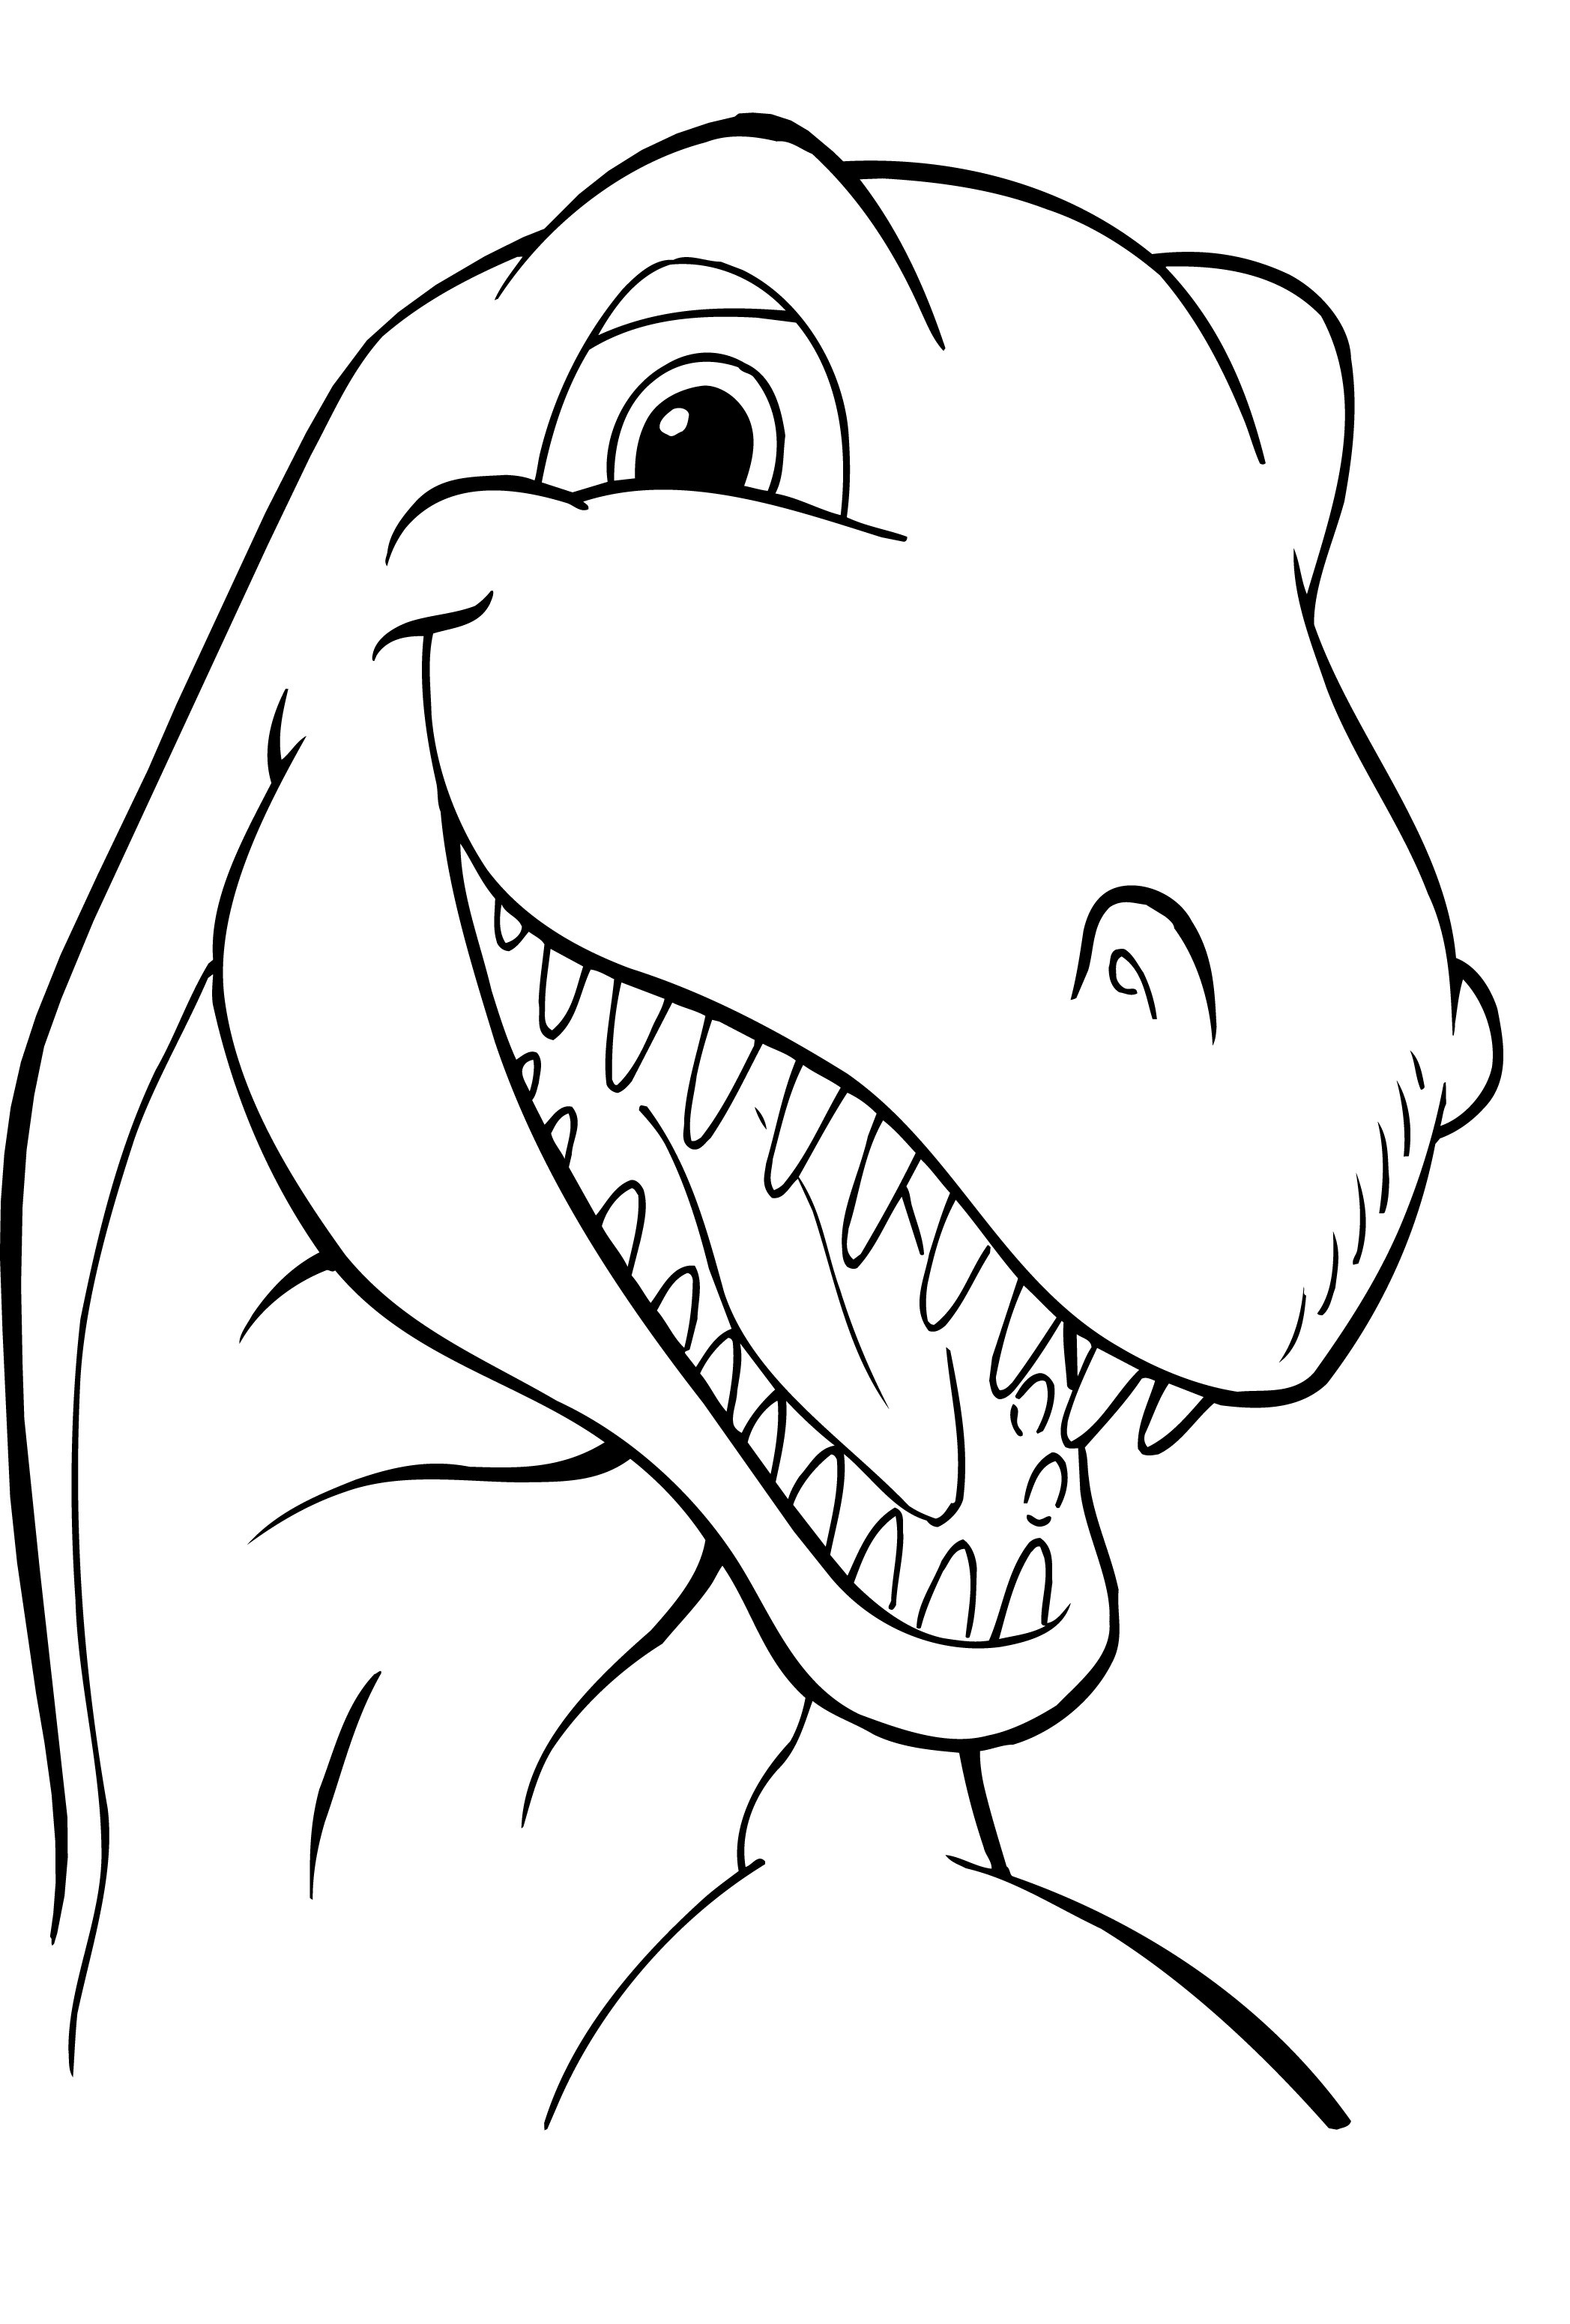 Free Printable Dinosaur Coloring Pages for Child 6212 Dinosaurs Printable Of Coloring Book and Pages Free Printable Dinosaur Habitat Coloring Printable